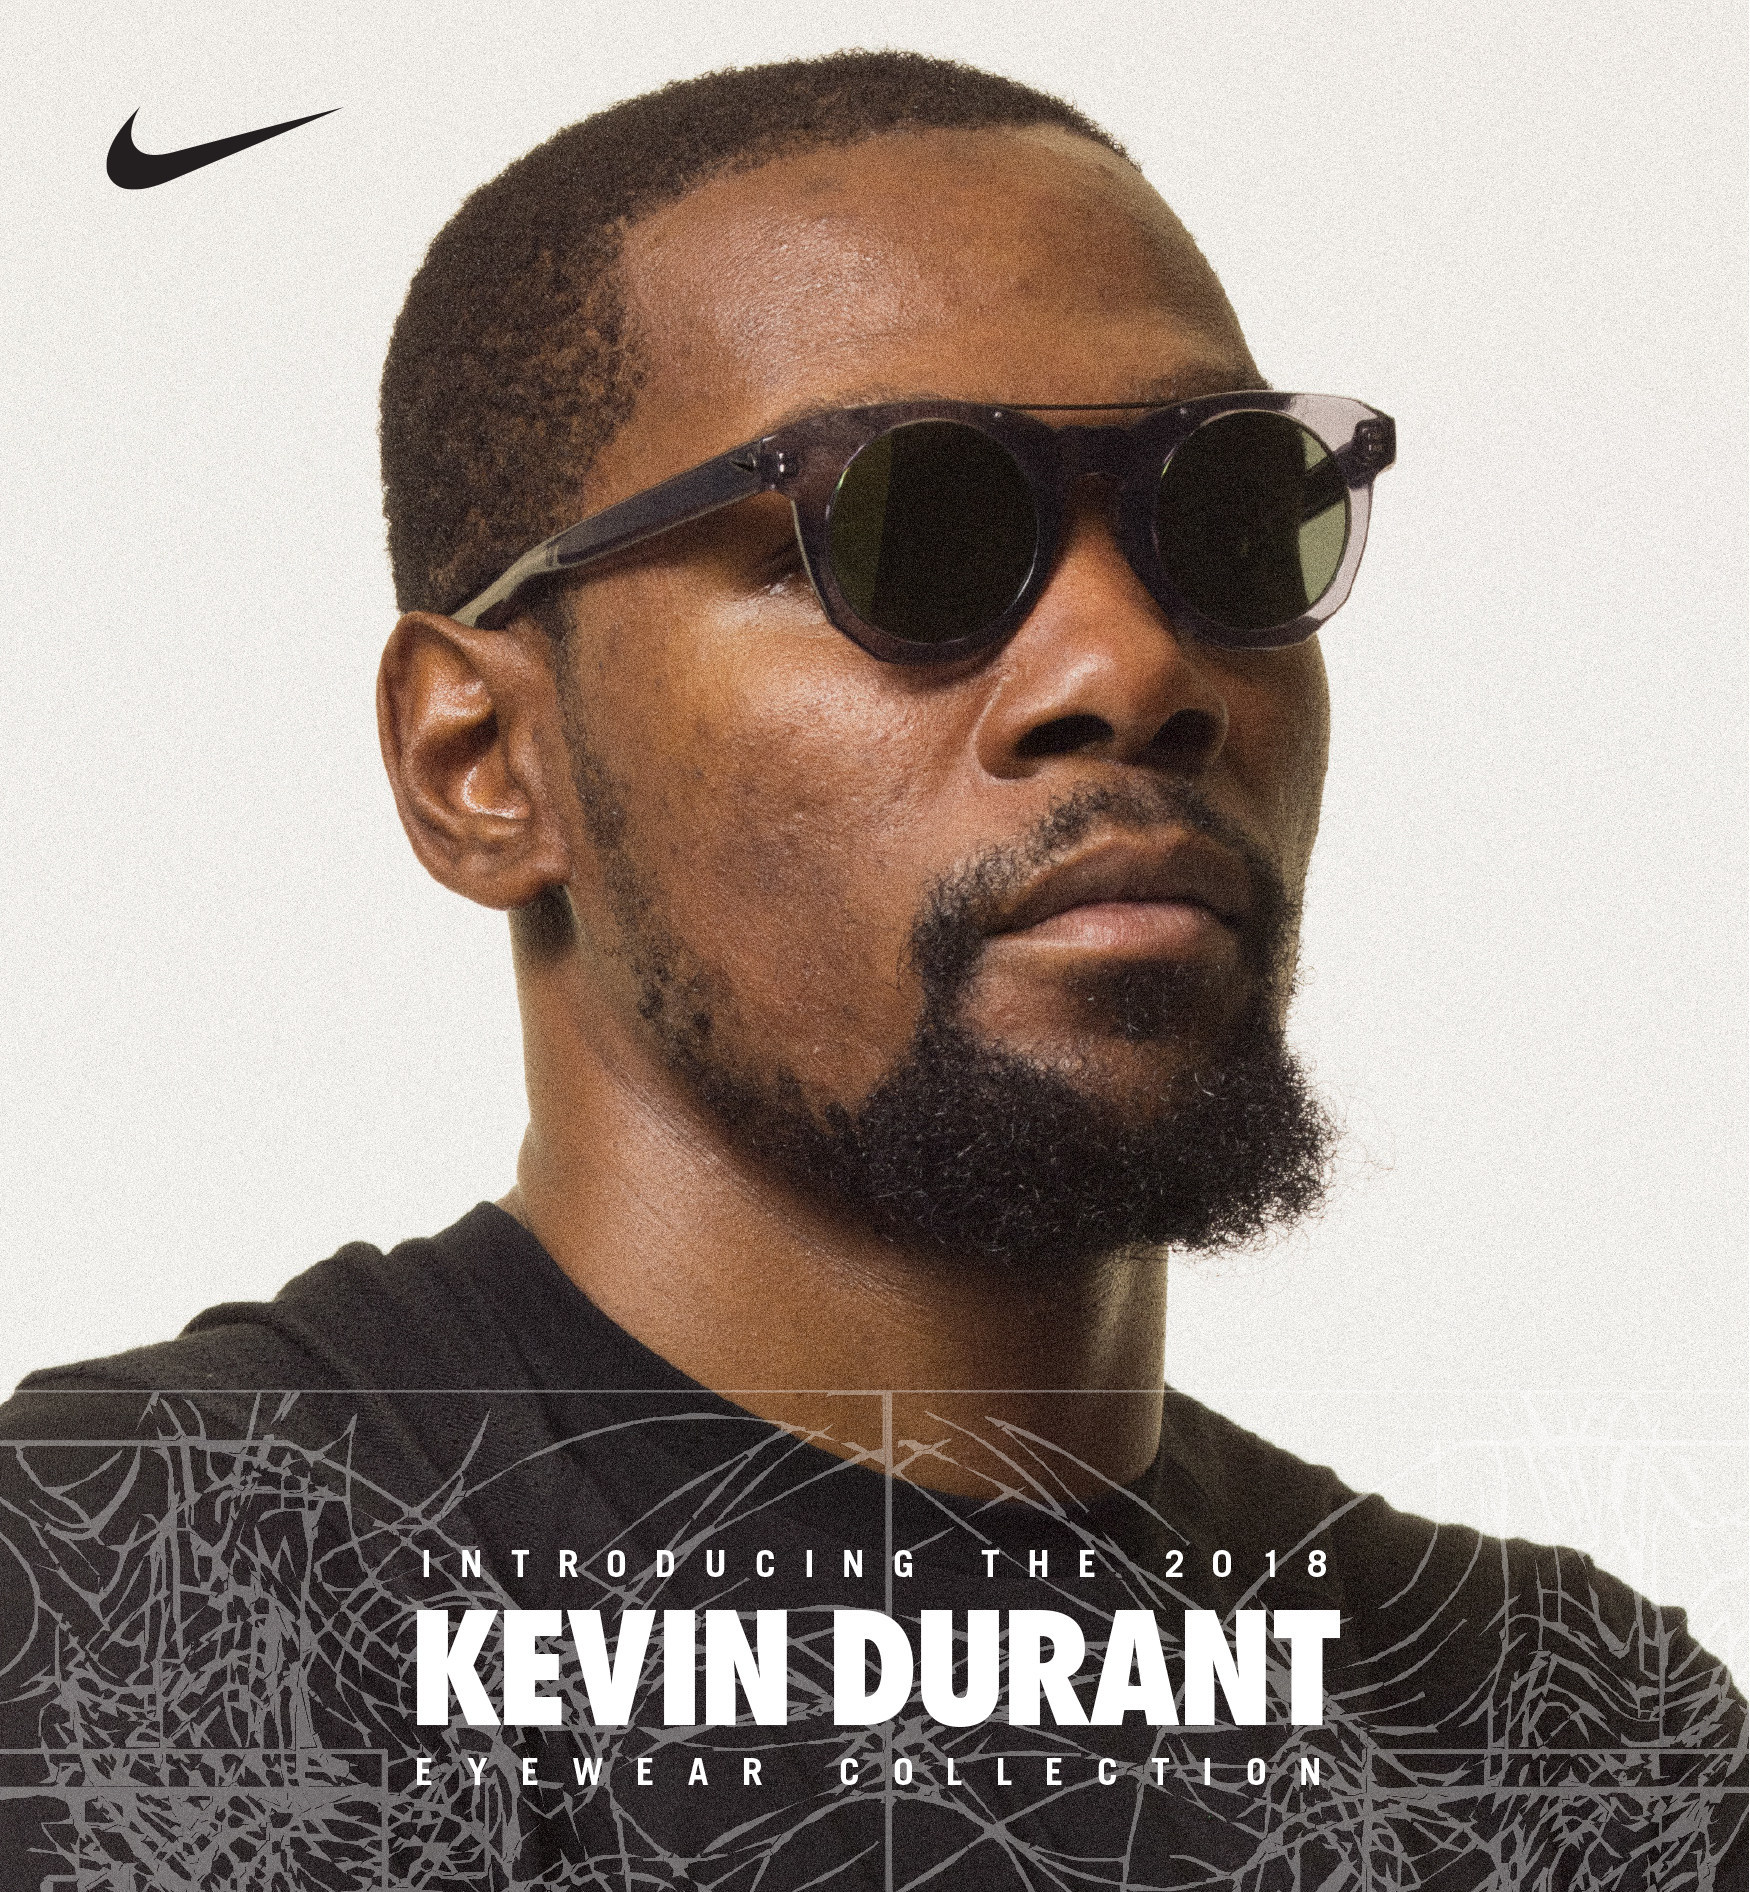 9f260ef85cc NIKE VISION PARTNERS WITH KEVIN DURANT FOR 2018 KD EYEWEAR COLLECTION.  FIRST-EVER SUNGLASSES AND NEW OPTICAL STYLES TO DEBUT FOR FALL 2018